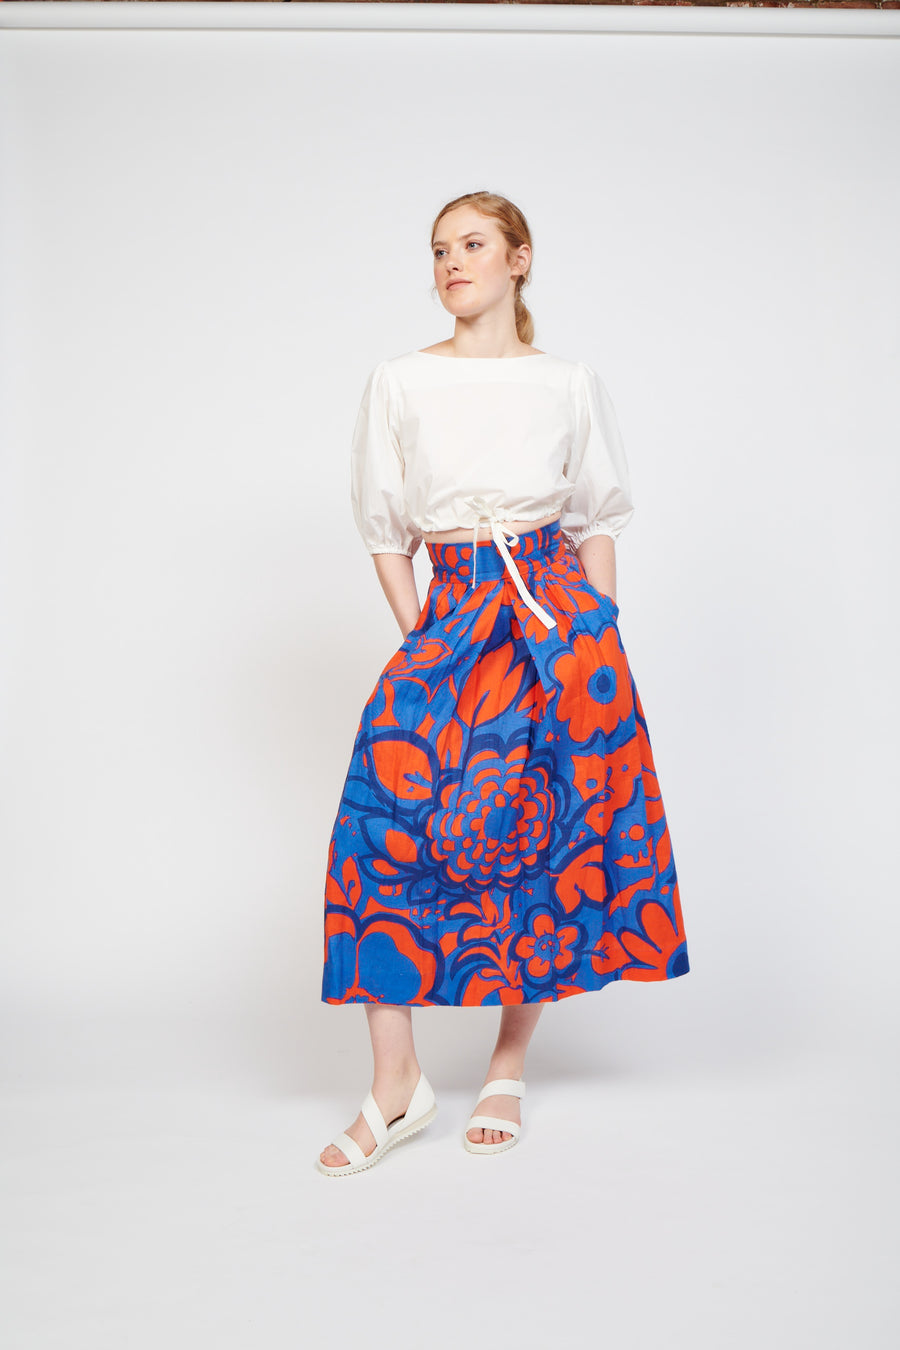 Kimani Skirt in Ashbury Floral Red/Blue